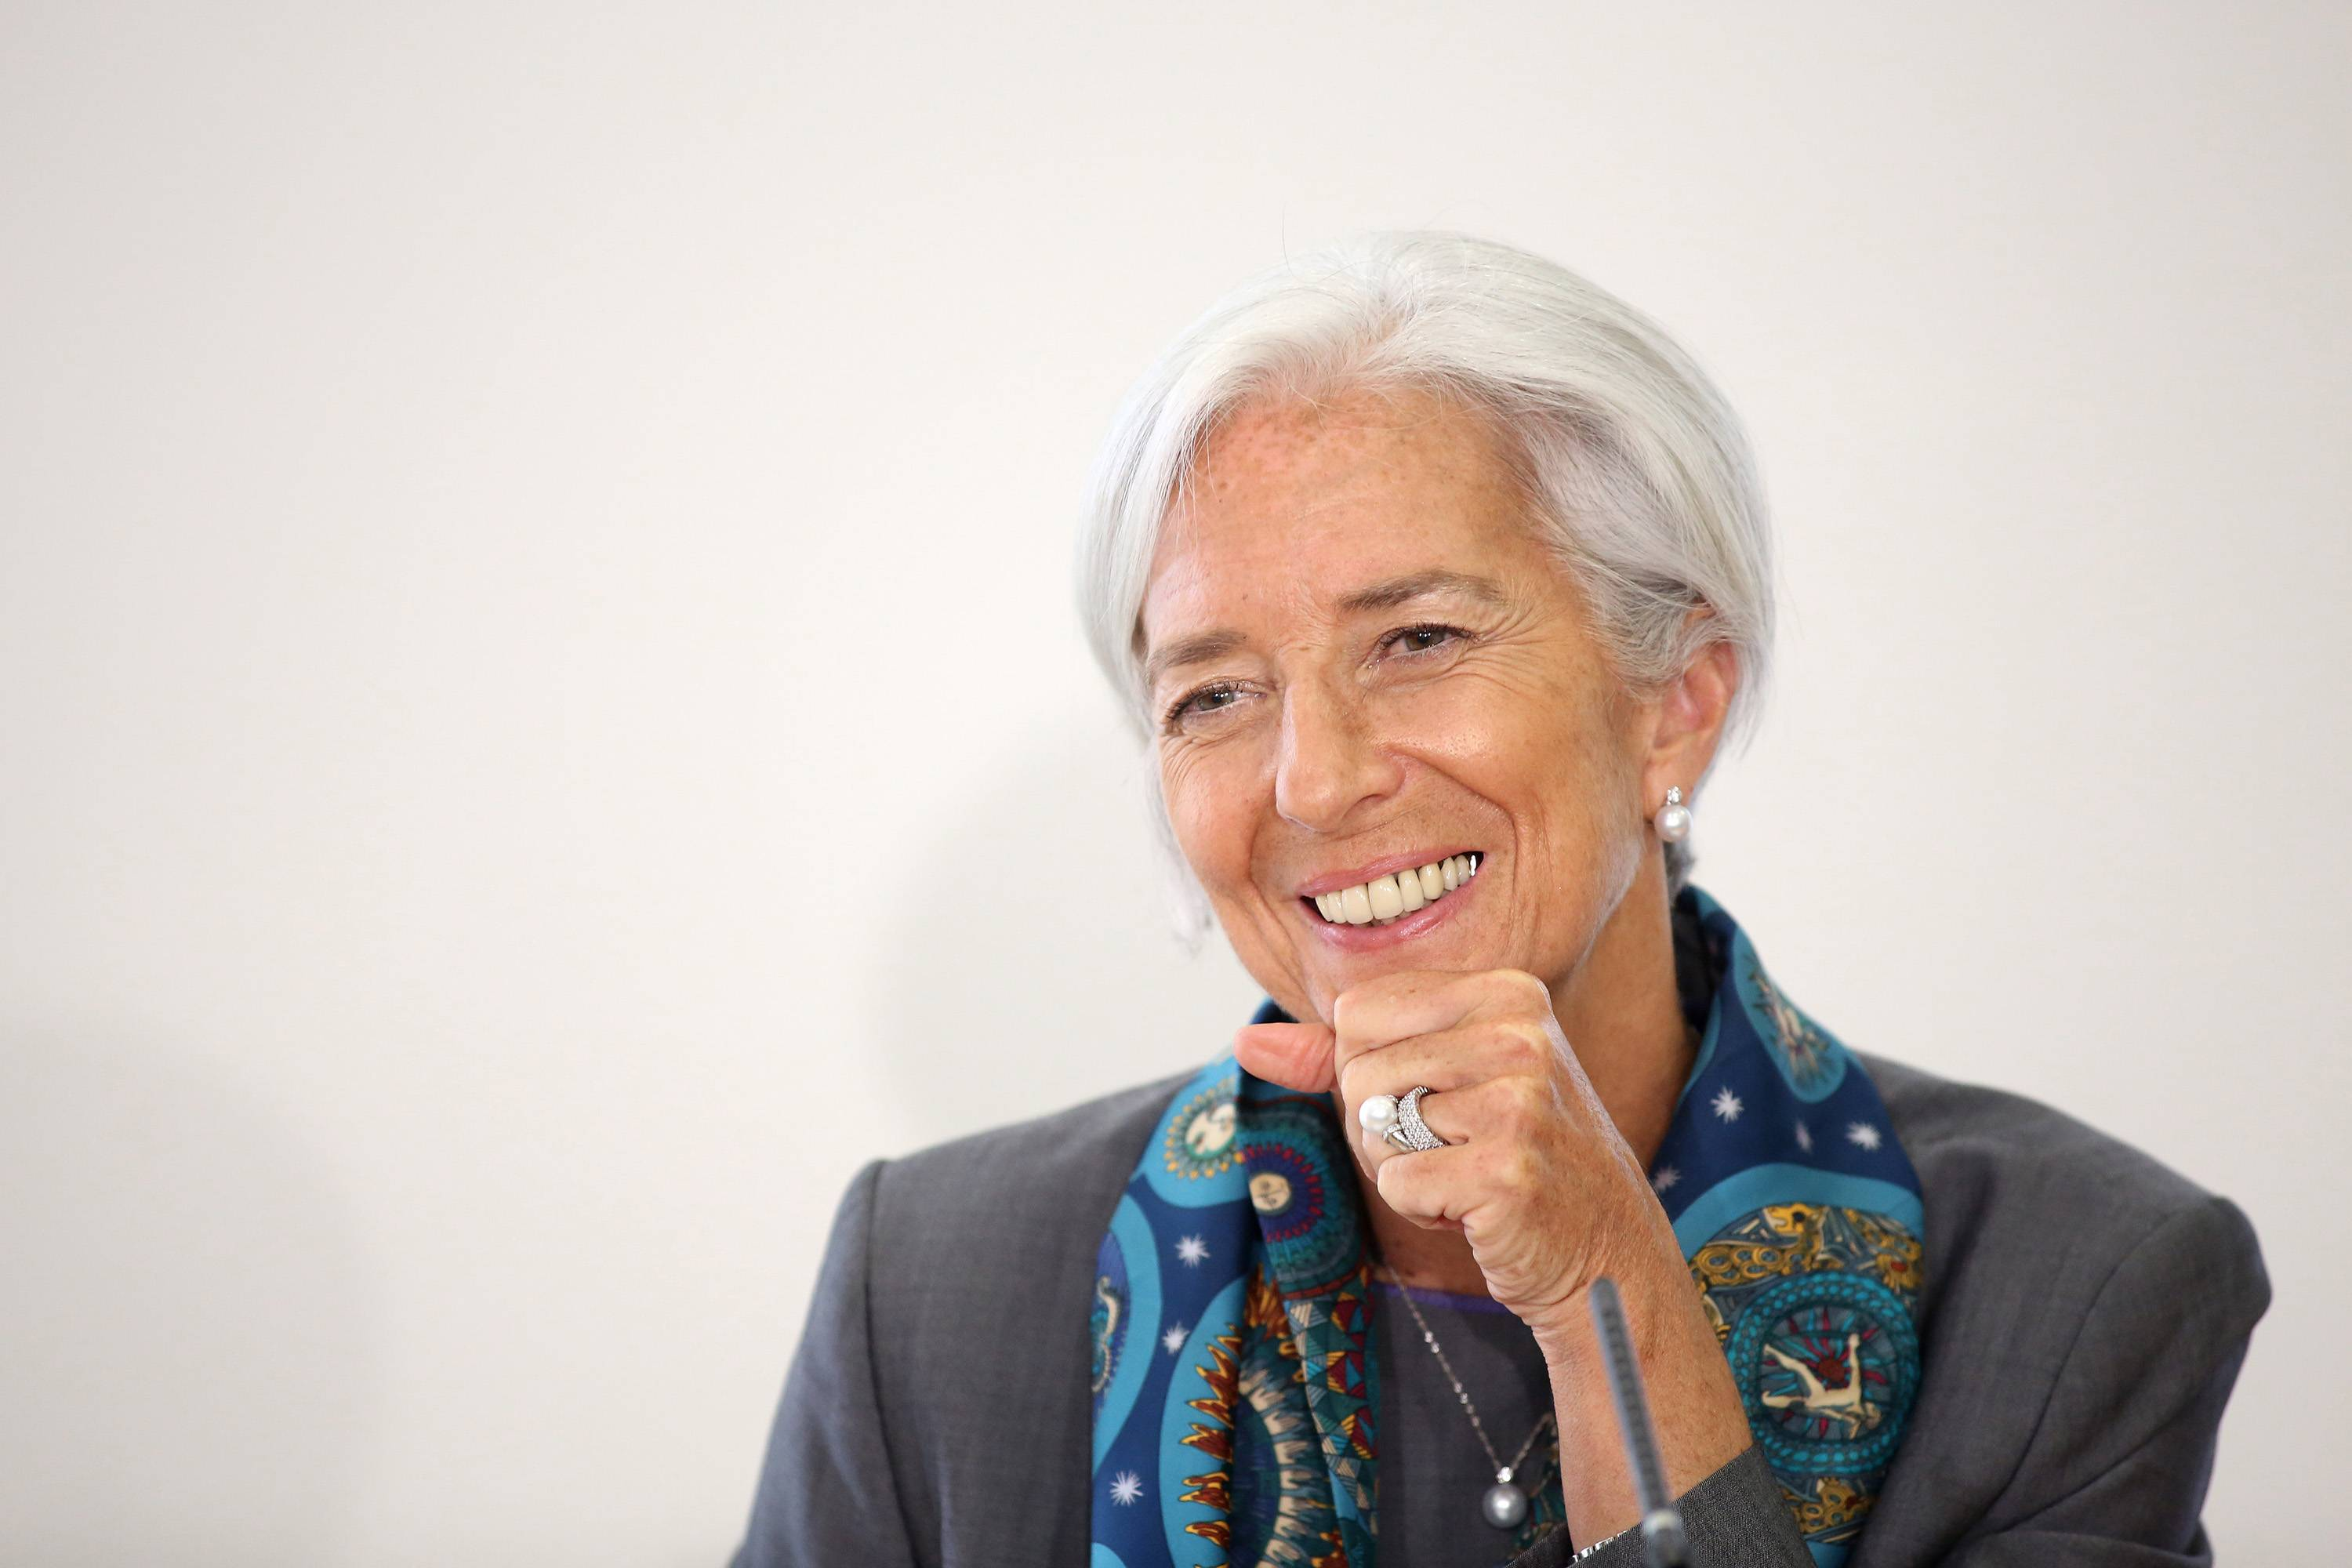 Christine Lagarde, managing director of the International Monetary Fund (IMF)